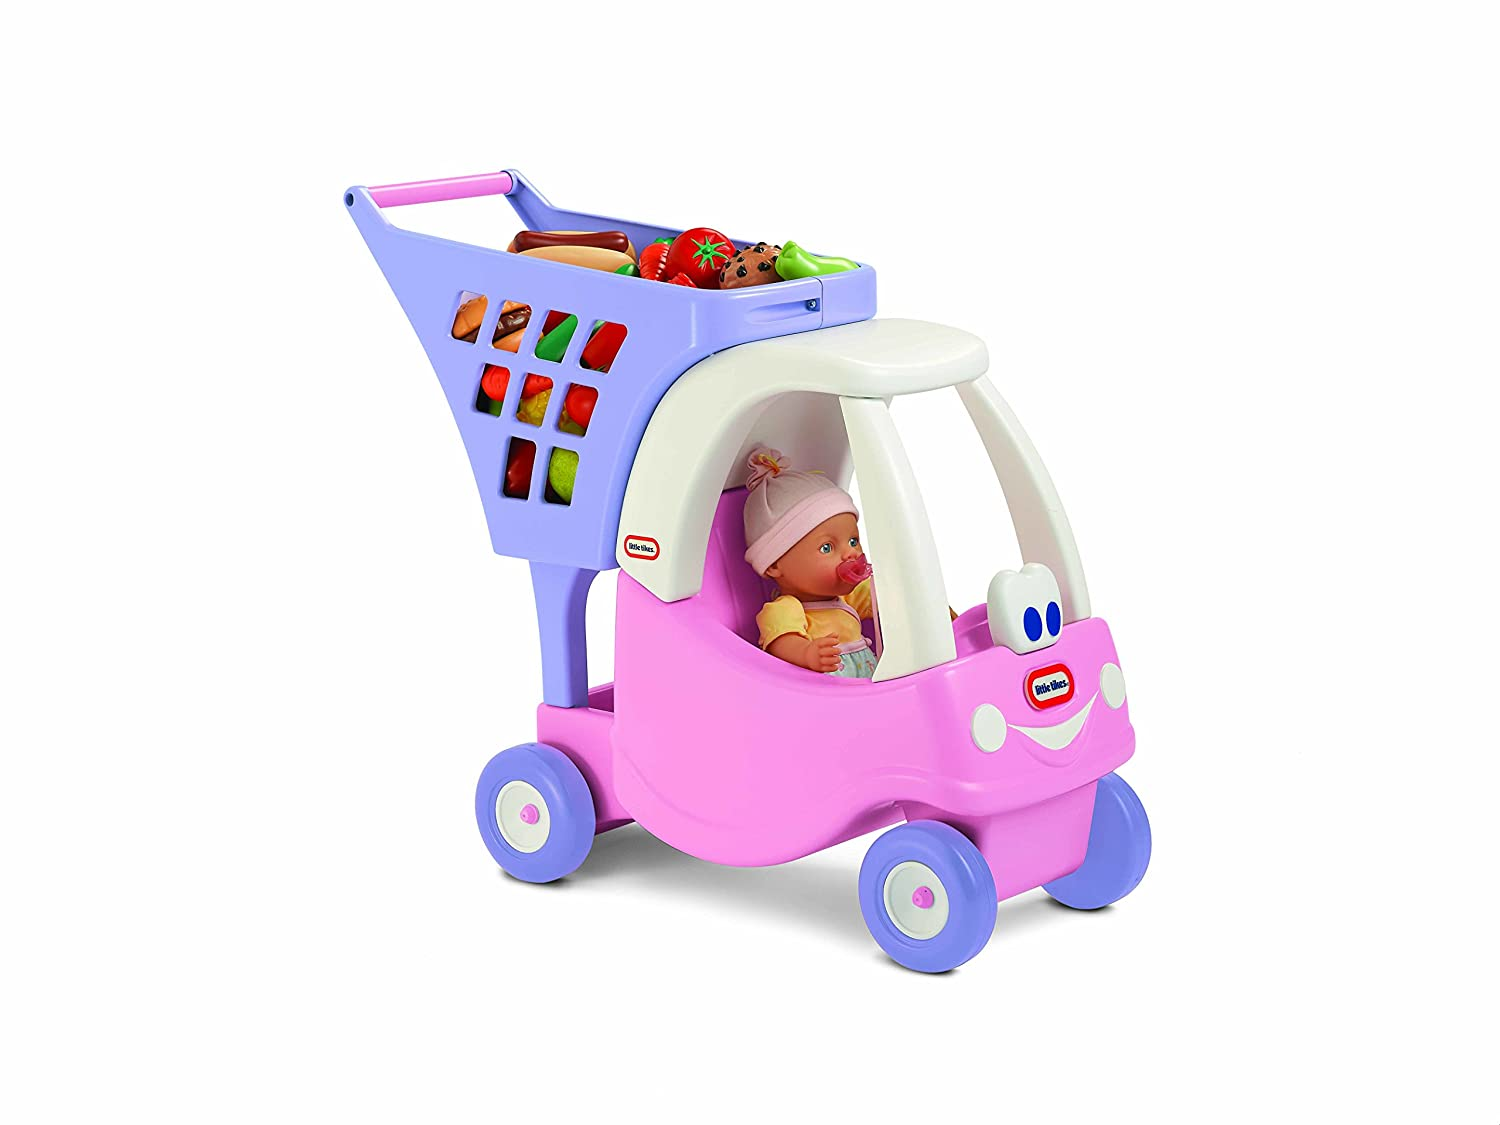 Little Tikes Pink Cozy Shopping Cart: Little Tikes: Amazon.co.uk ...